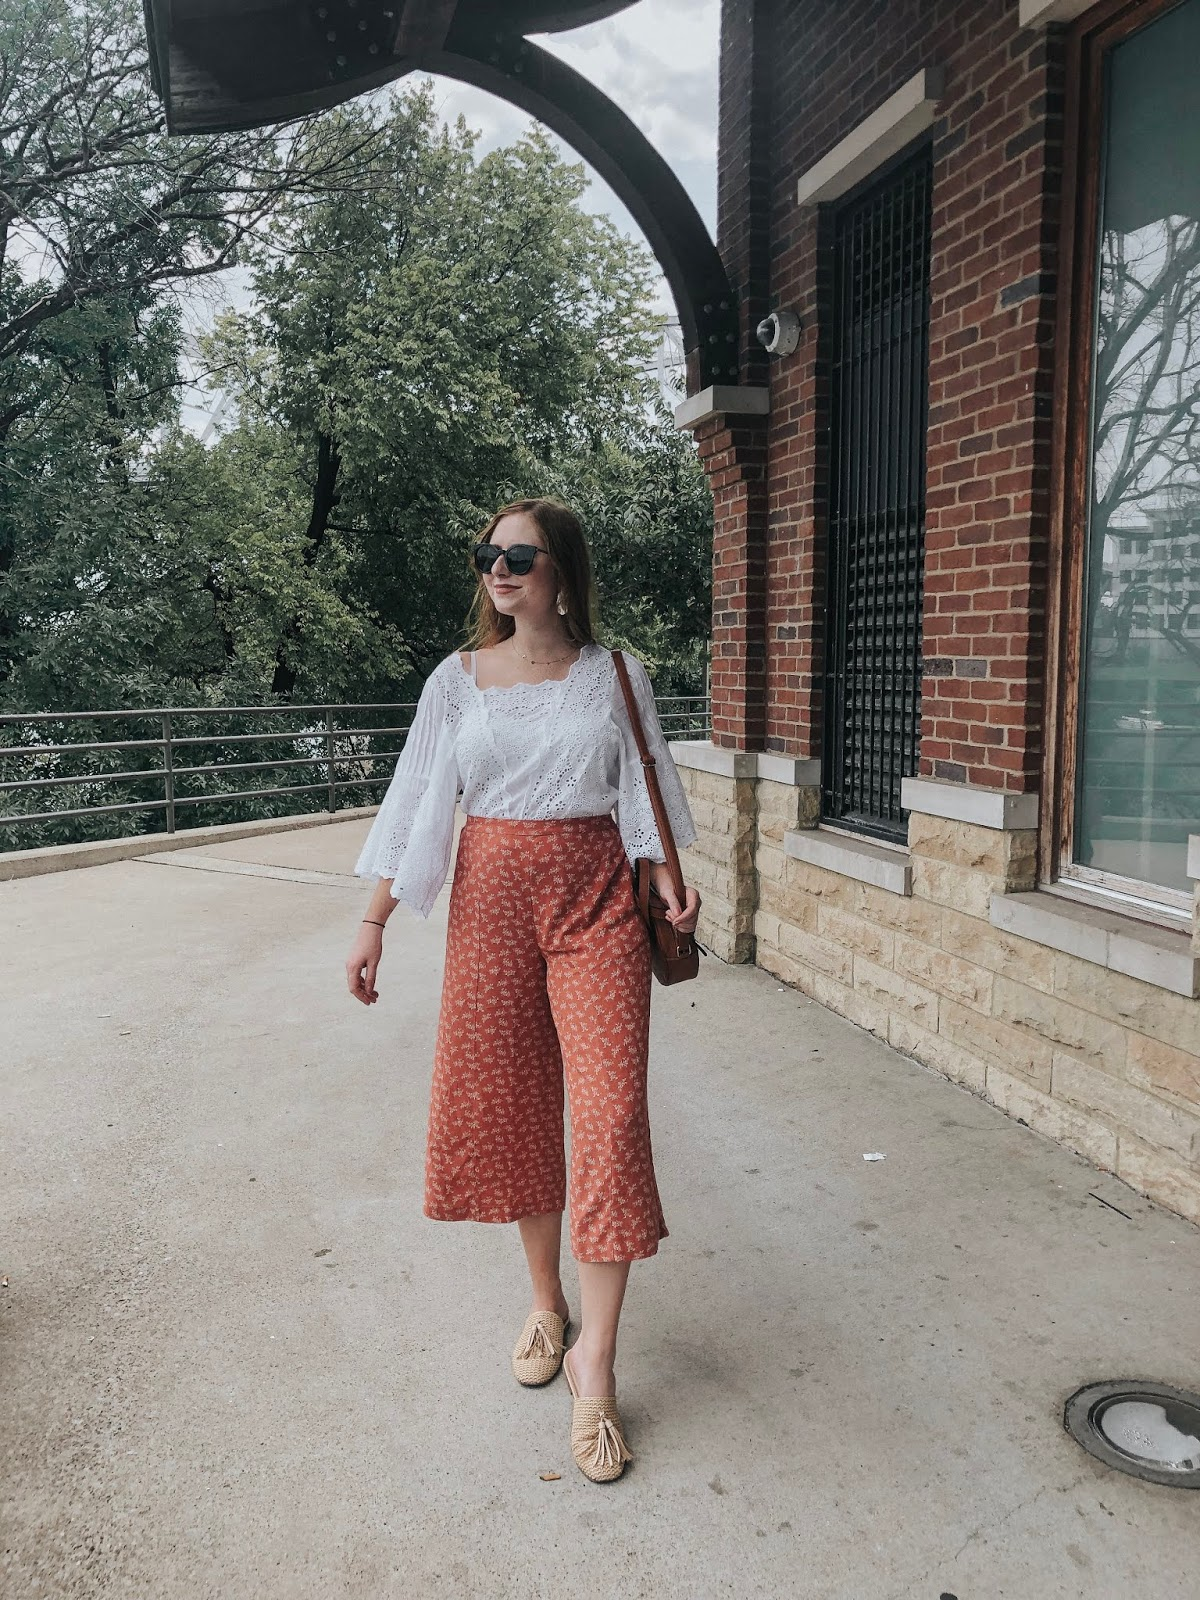 Nashville Travel Guide: My Stay at Omni Nashville Hotel Outfit Look for Nashville Featuring American Eagle culottes and white eyelet top.